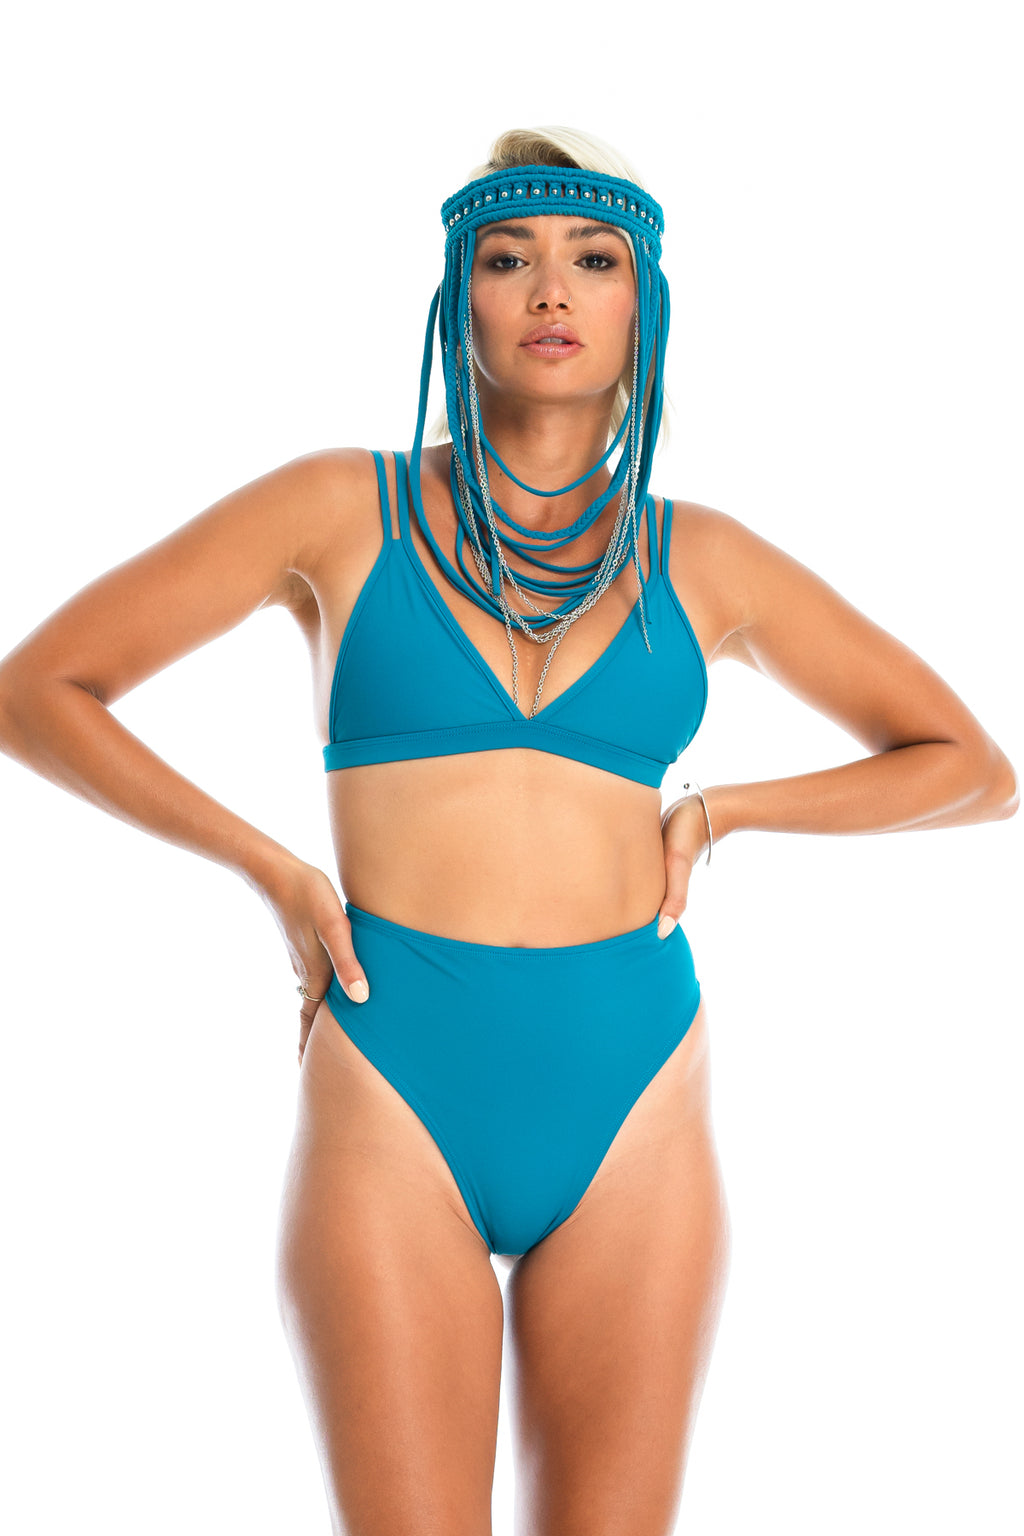 OCEAN TRIANGLE TOP | Teal